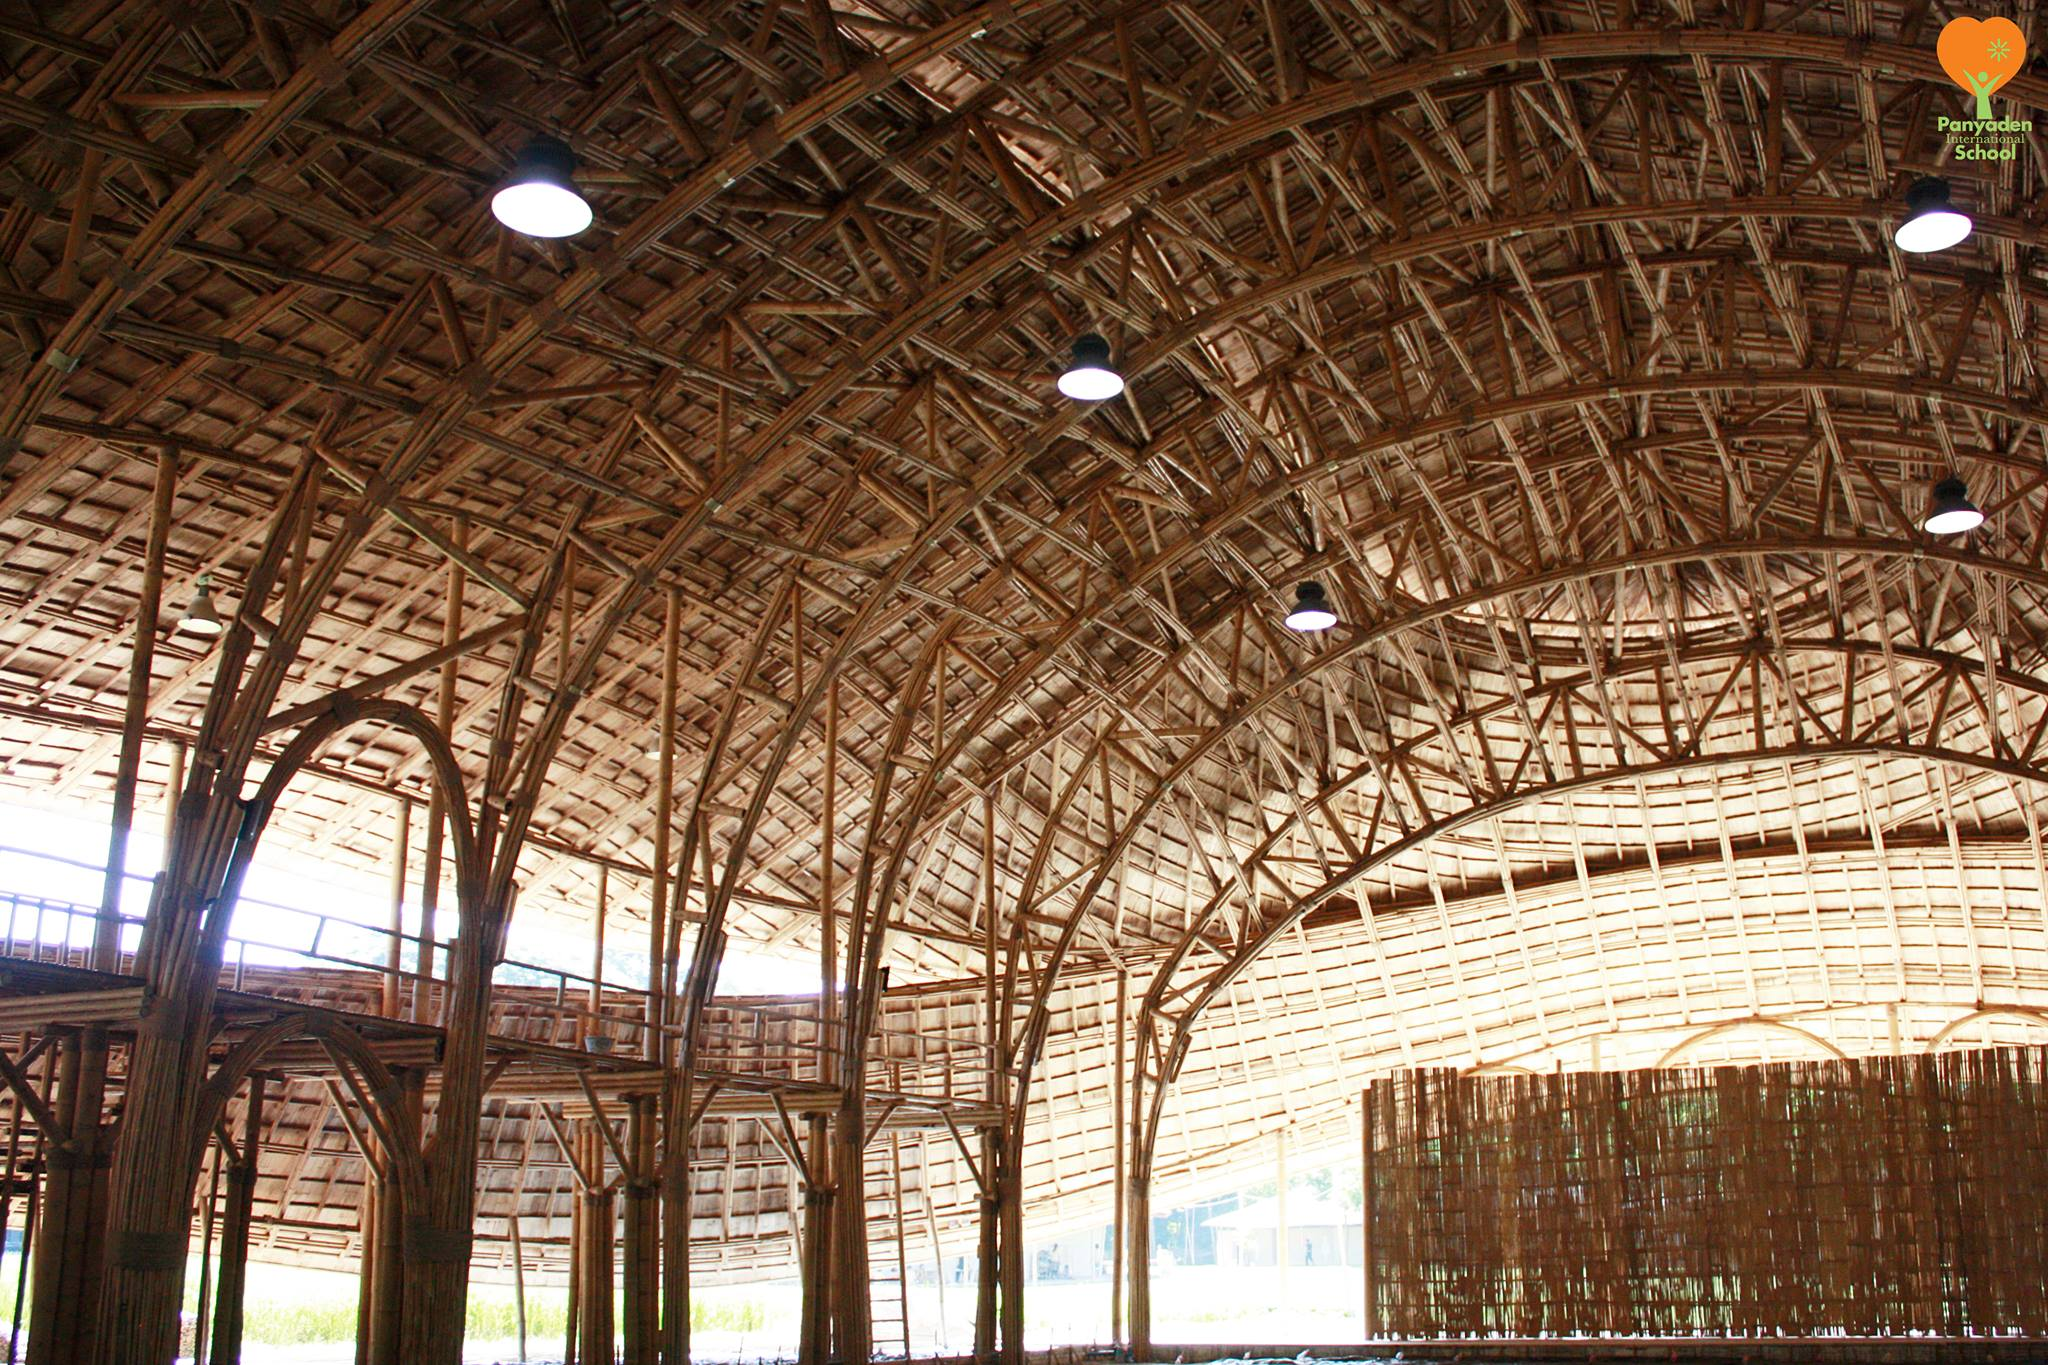 Intricate bamboo roof design, Panyaden International School's new assembly hall. Photo by Panyaden